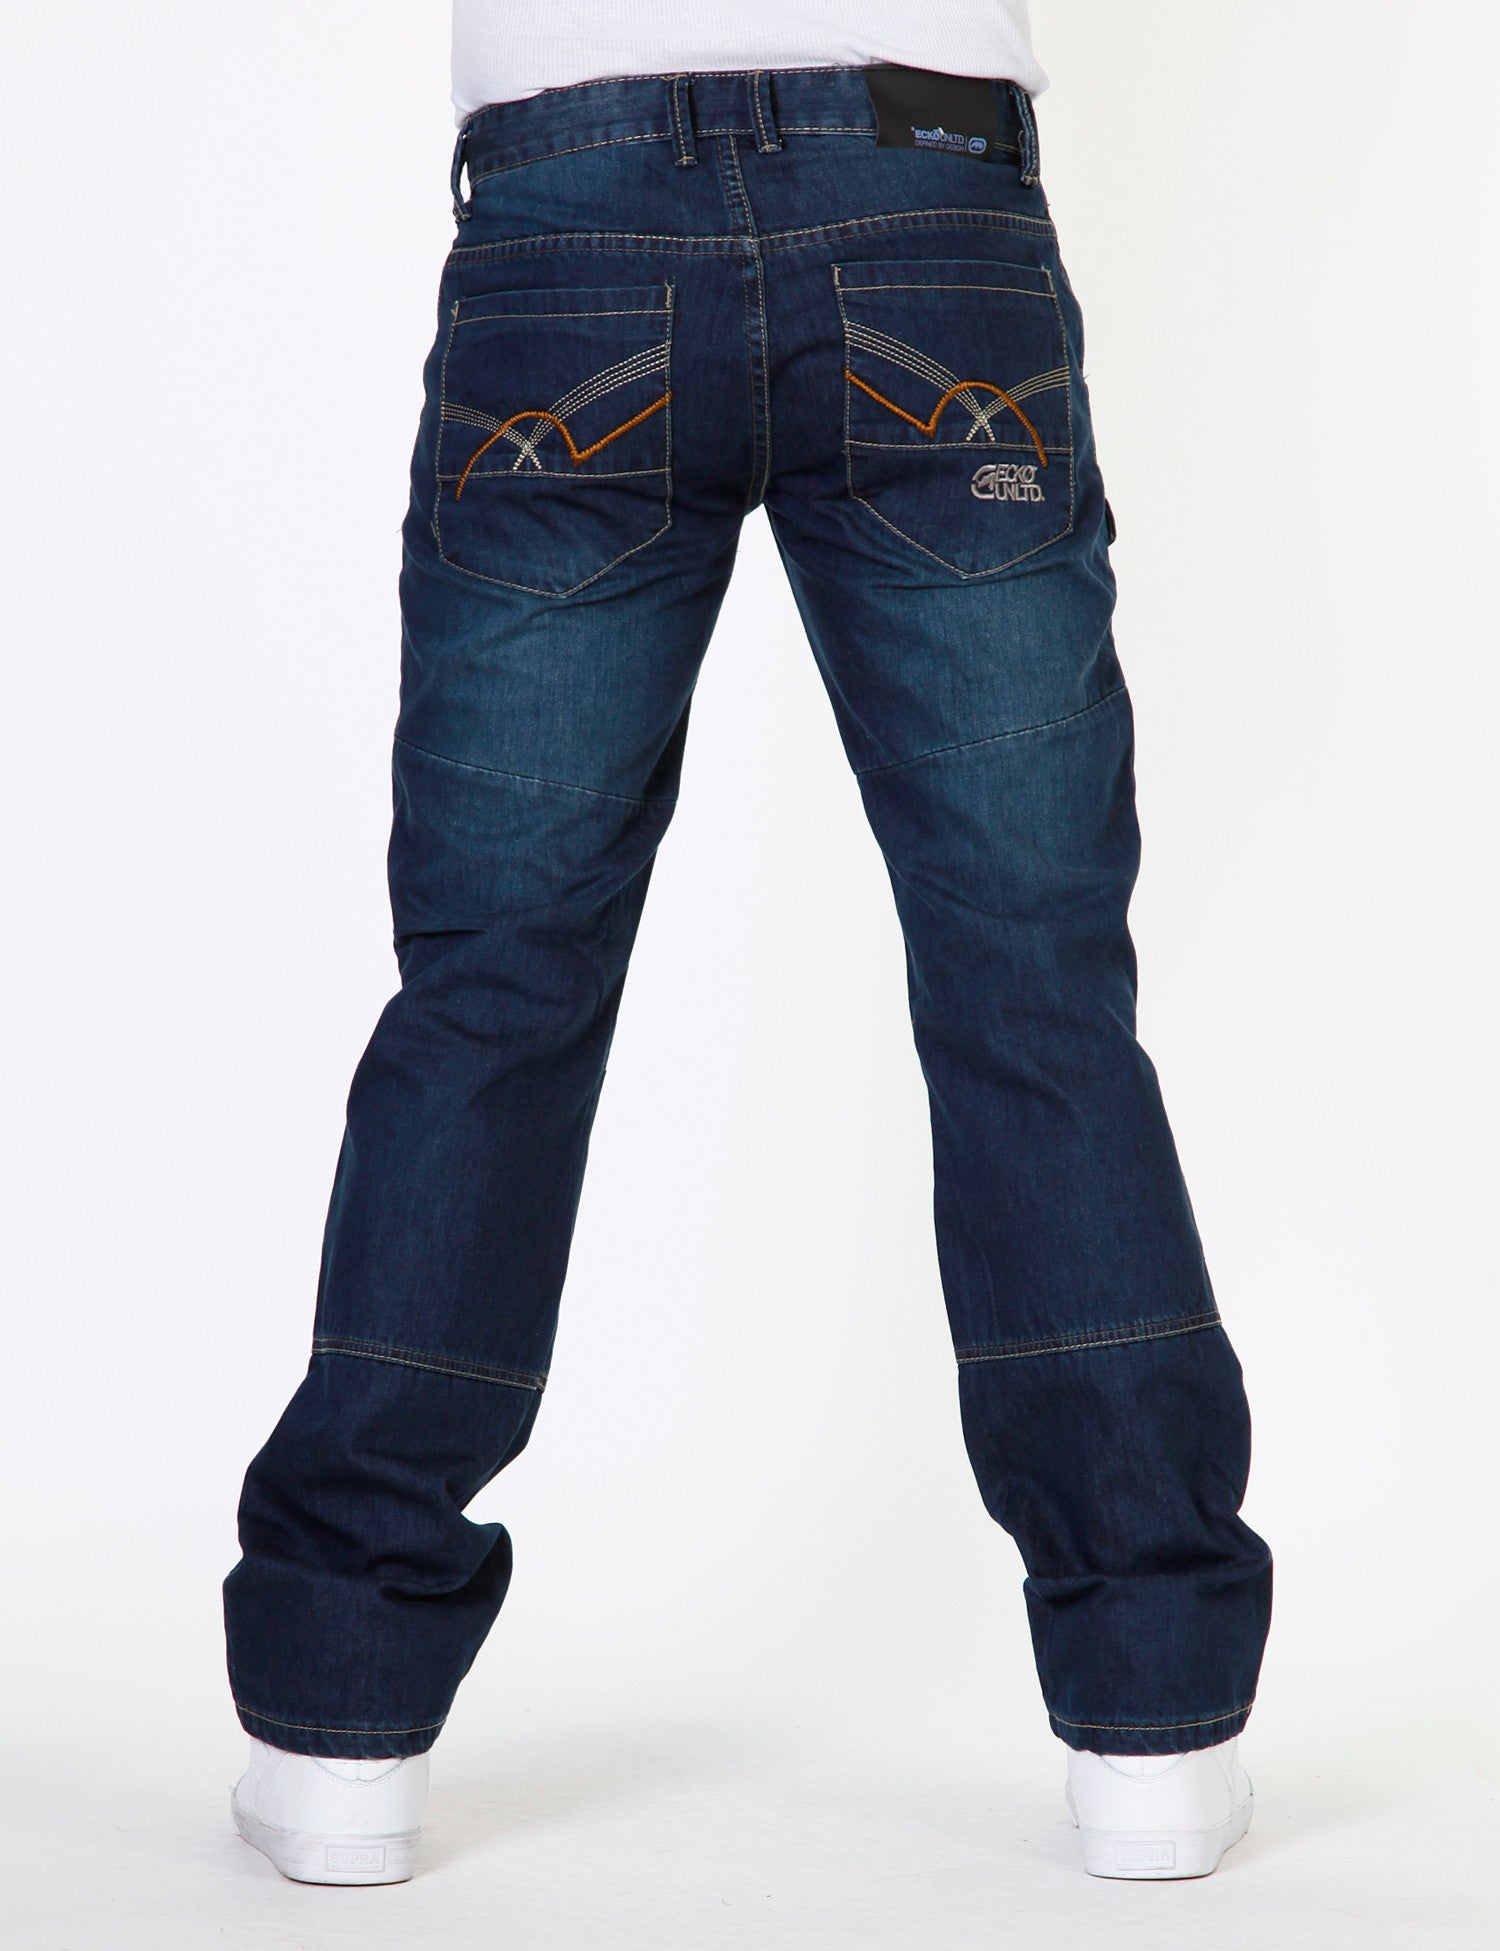 Image of Dailmler Jeans Dark Blue